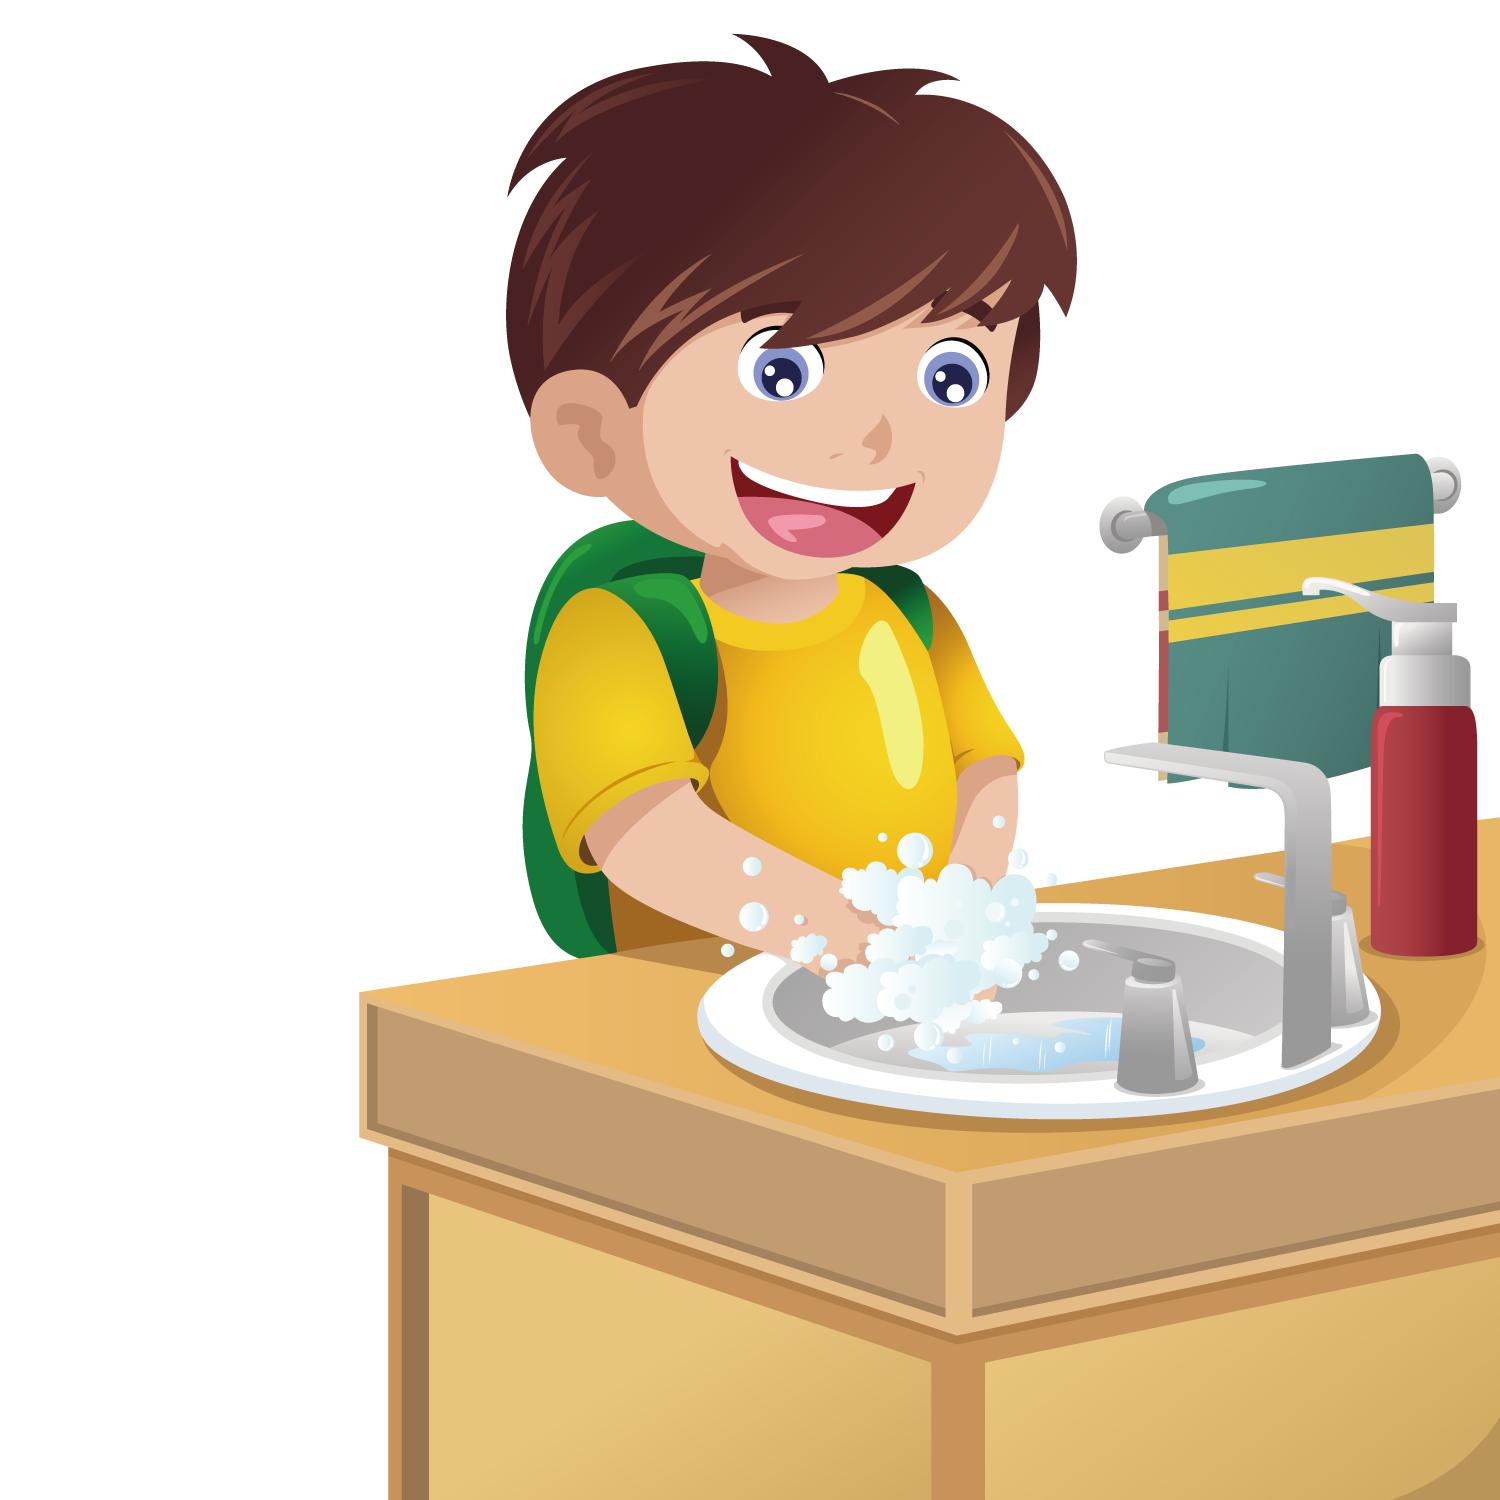 Toddler clipart washing hand. Boy hands best royalty